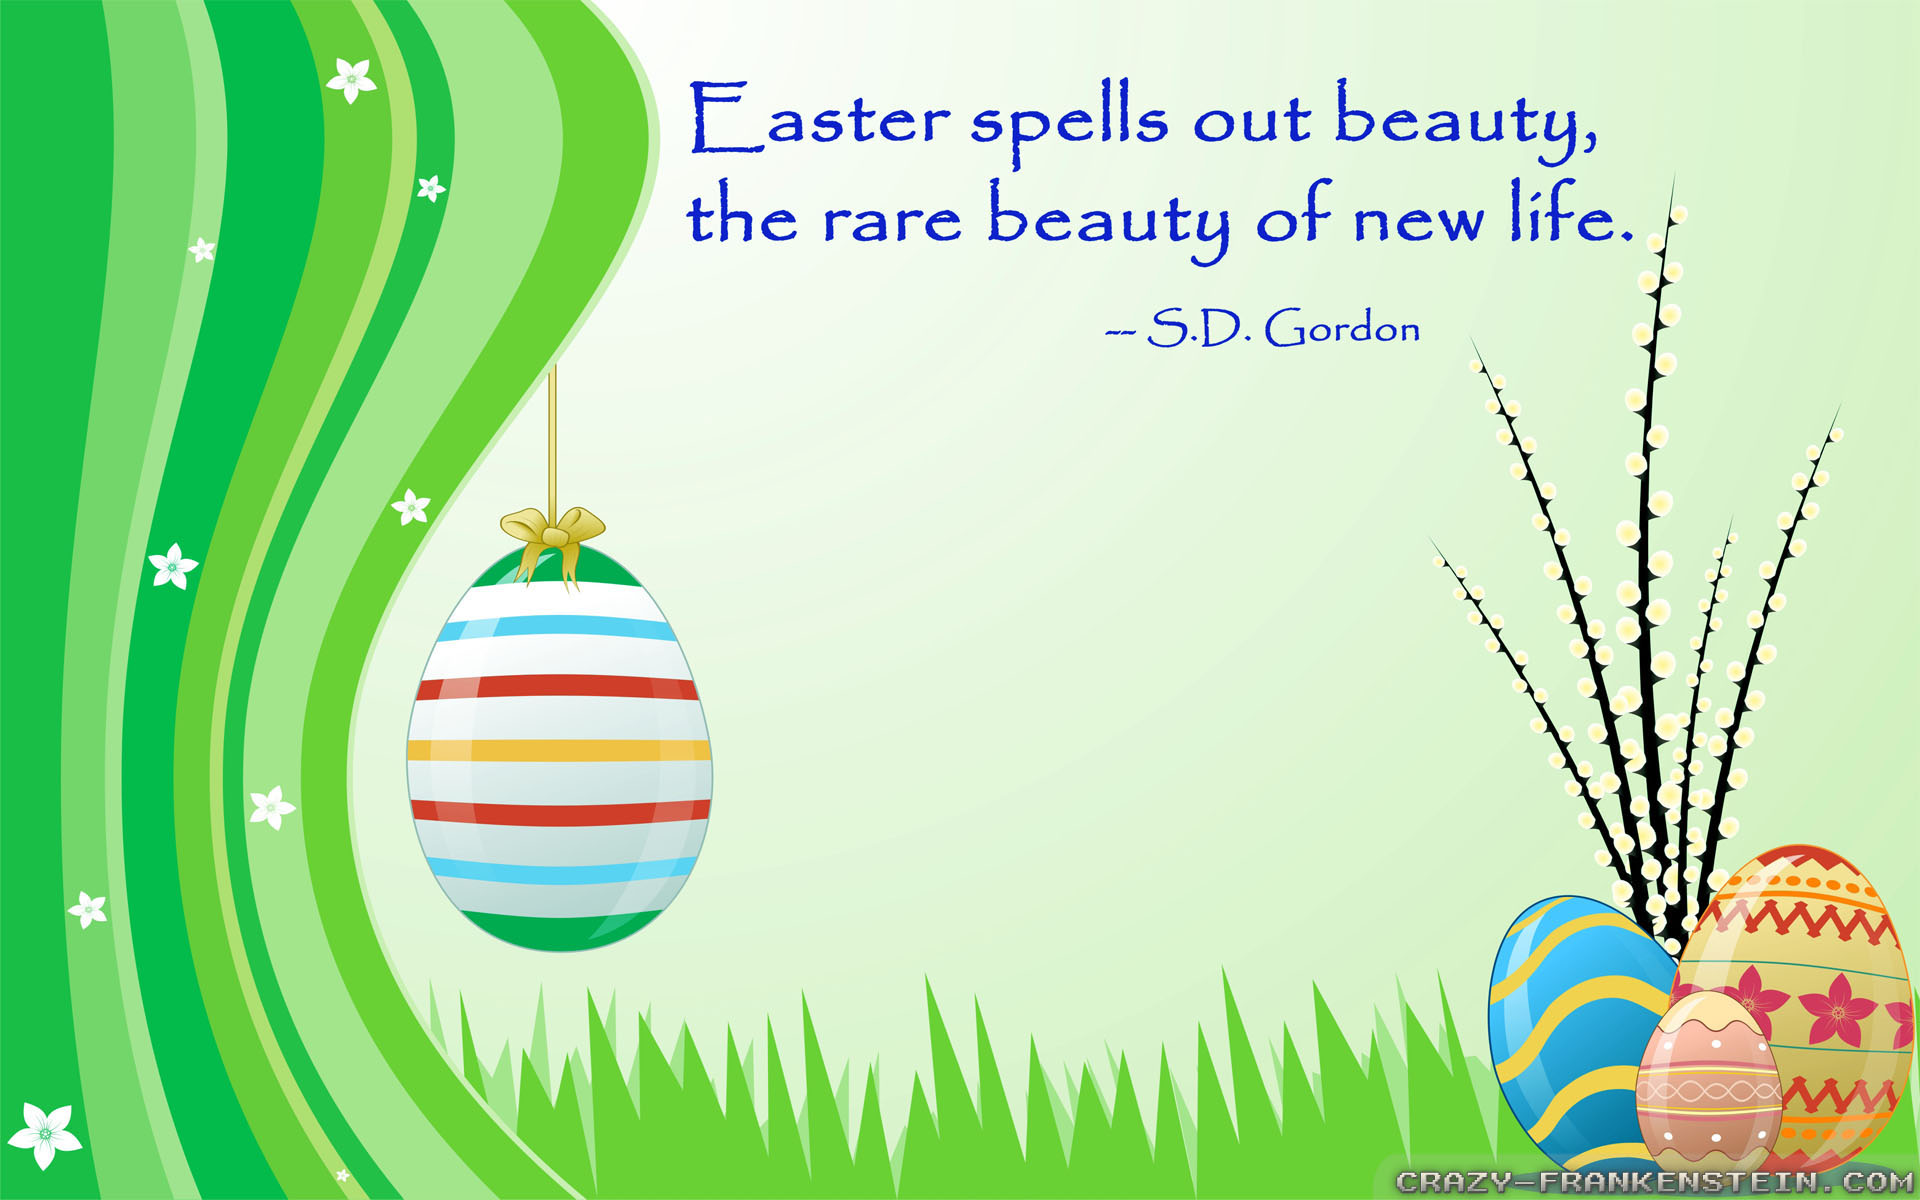 Quotes About Easter And Life - HD Wallpaper